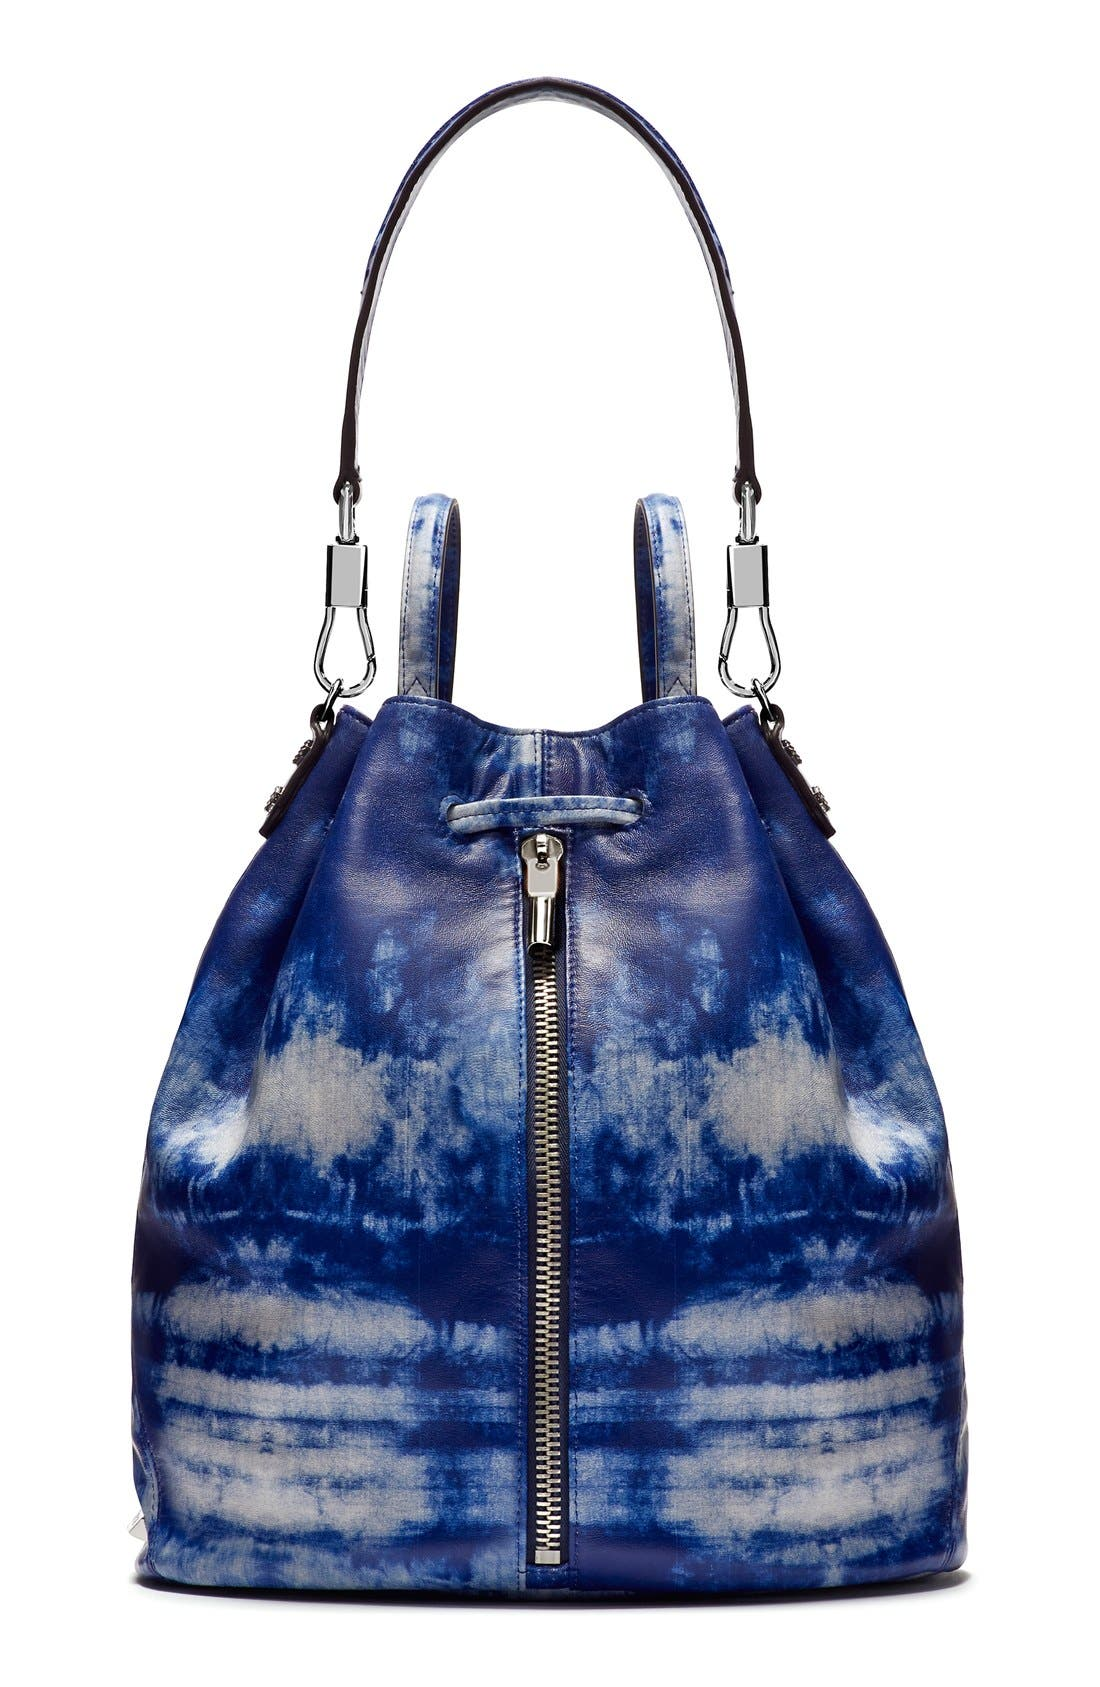 Main Image - Elizabeth and James 'Cynnie' Tie Dye Sling Backpack